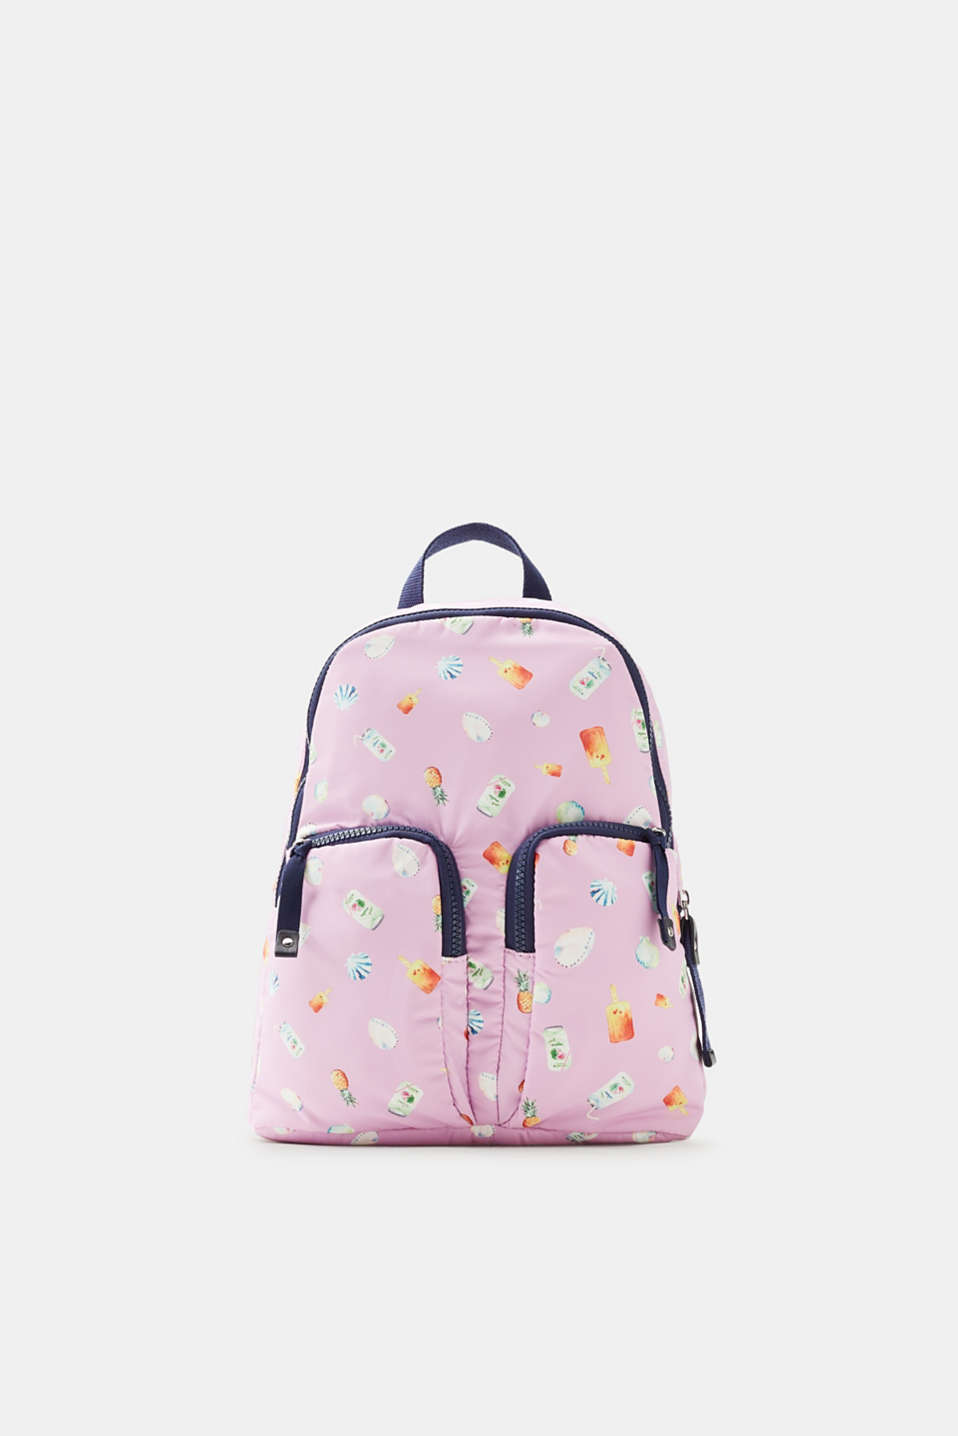 Esprit - Small backpack with a summery print